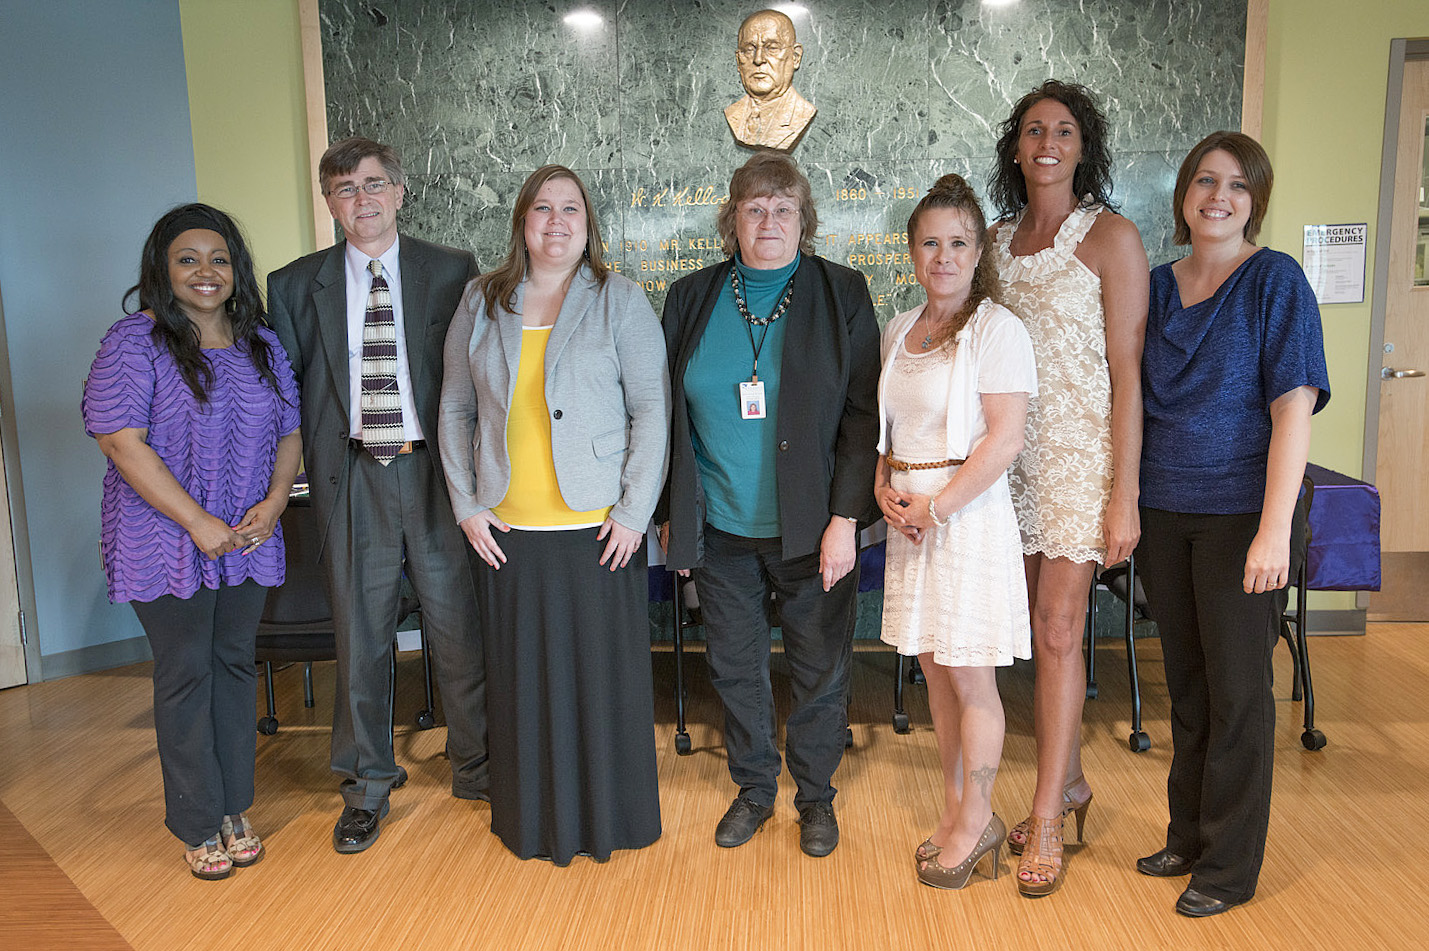 Paralegal students inducted into the LEX honor society in 2014.